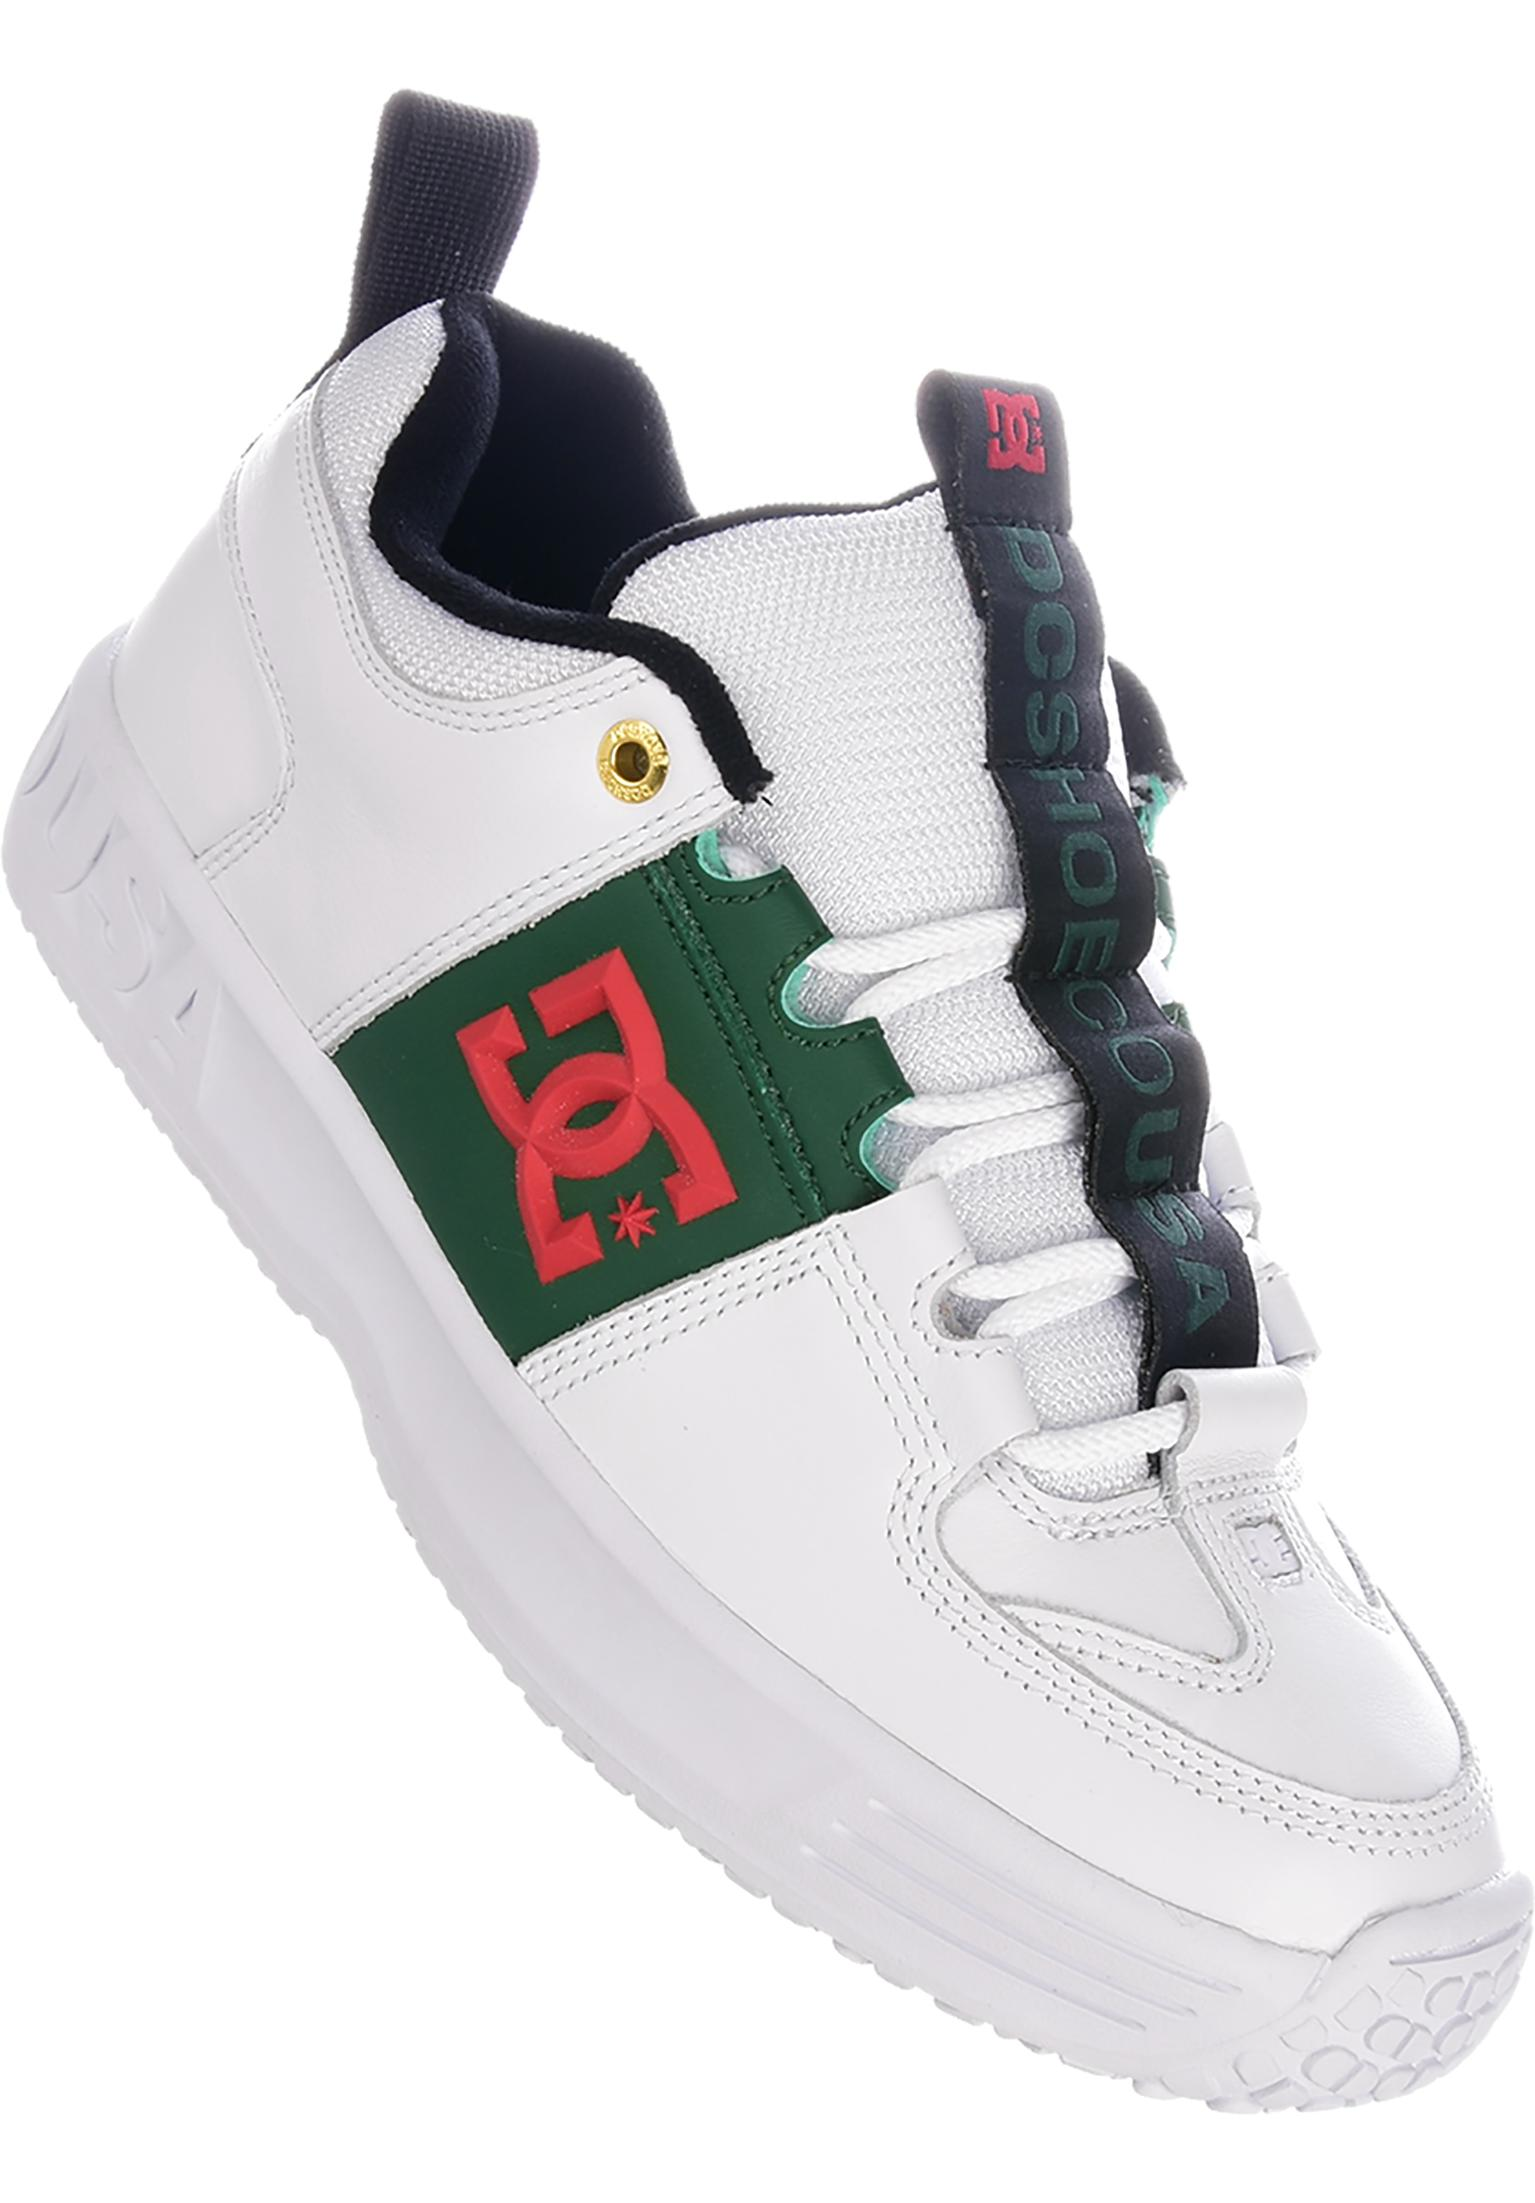 7b8eea0b3335 DC Shoes Alle Schuhe Kalis Lite grey white green vorderansicht 0603876  Source · Lynx OG DC Shoes All Shoes in white green navy for Men Titus